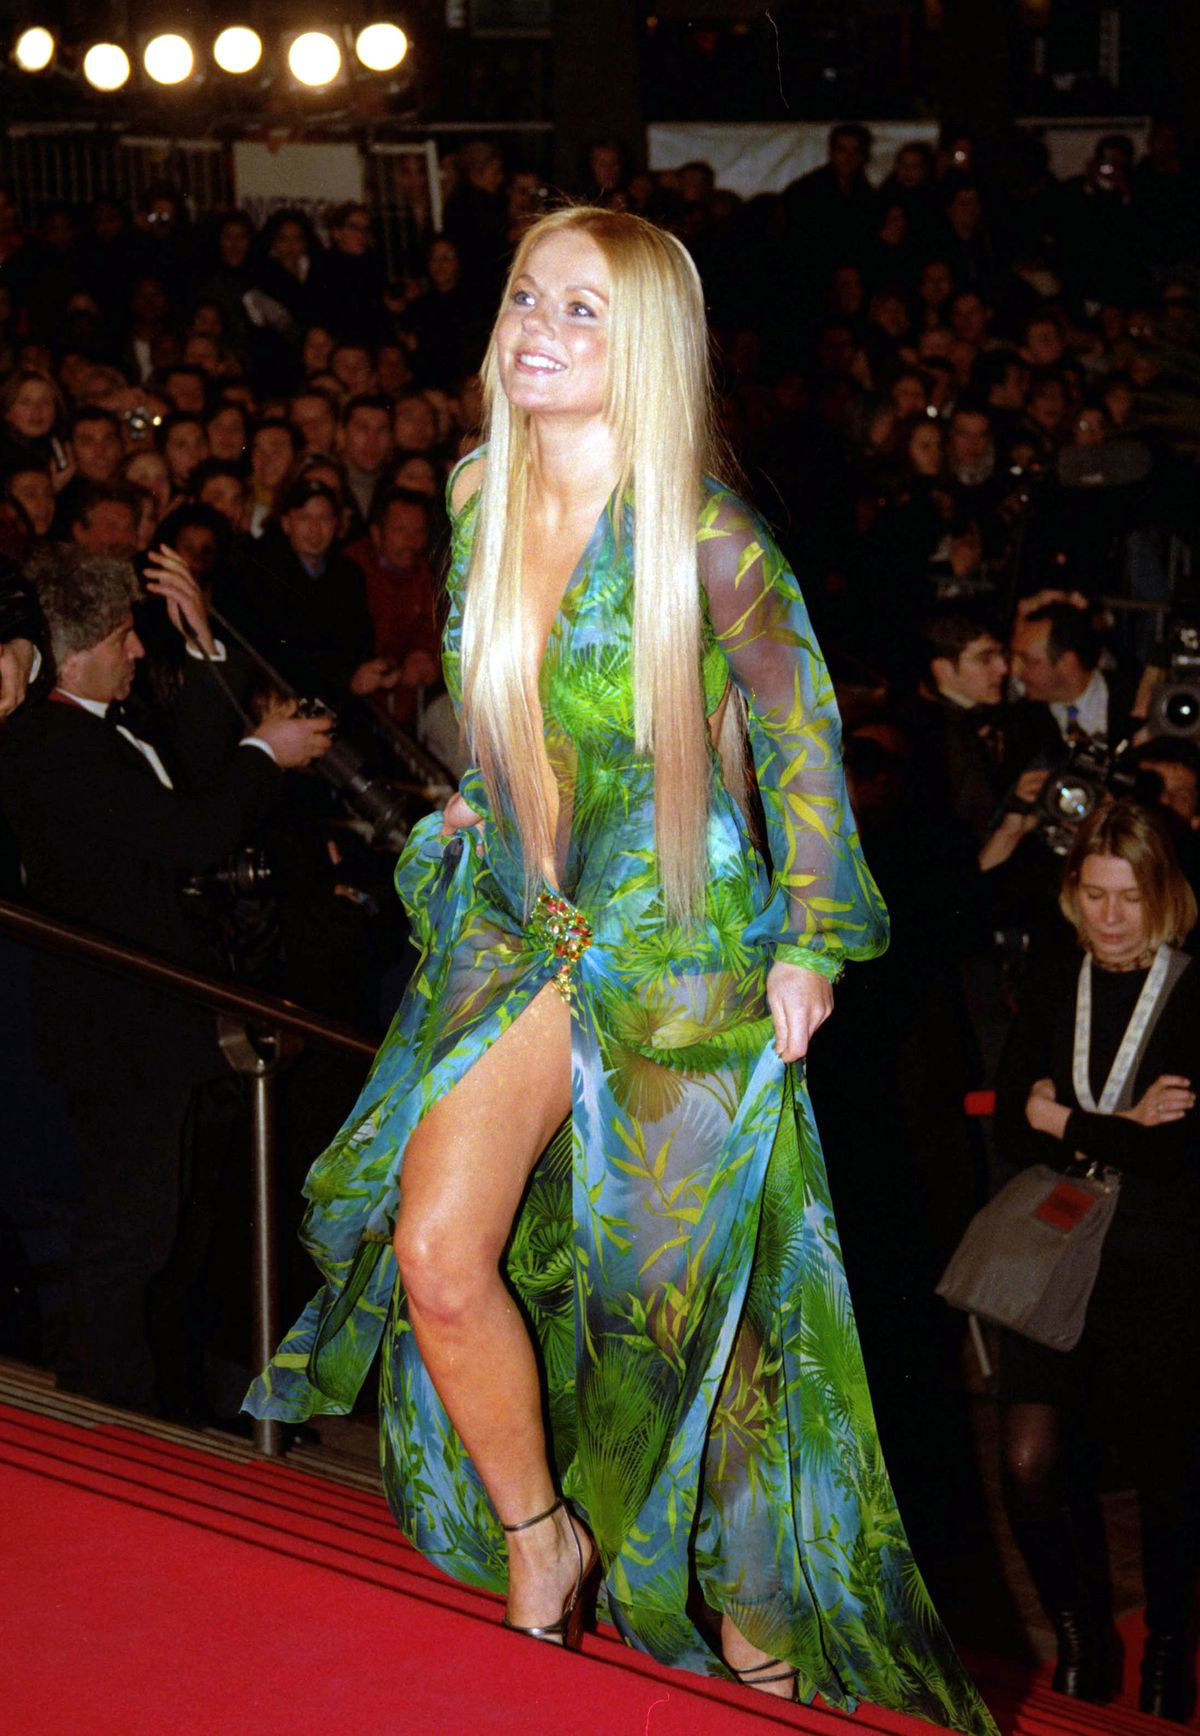 Geri Halliwell in the dress at the 2000 NRJ Music Awards in Cannes, France.